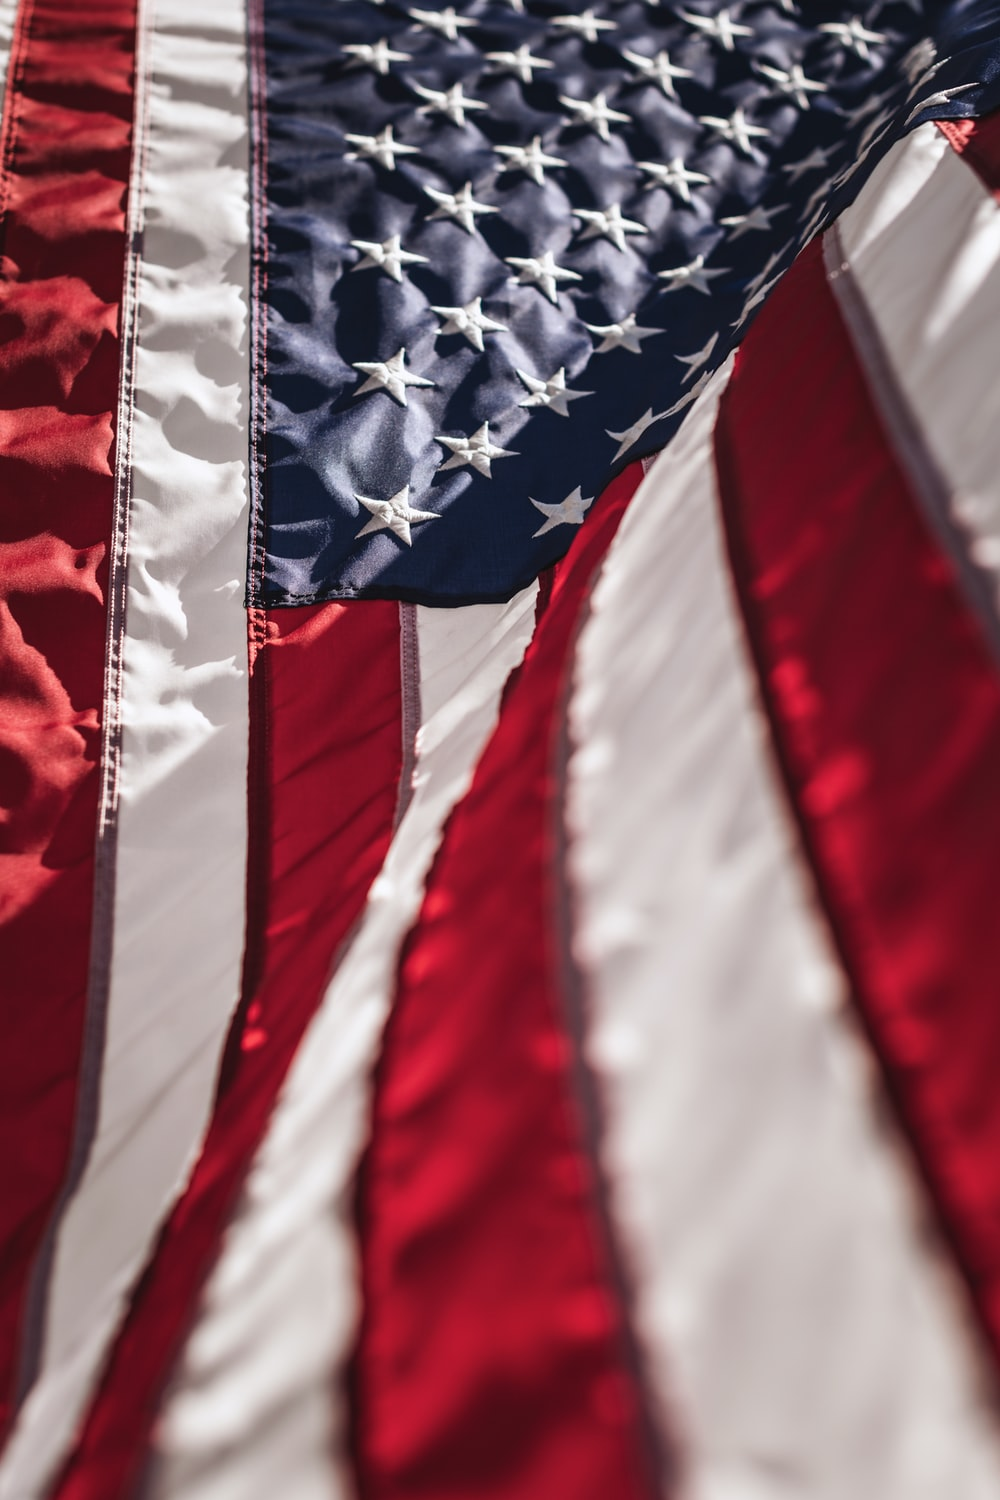 red white and blue textile